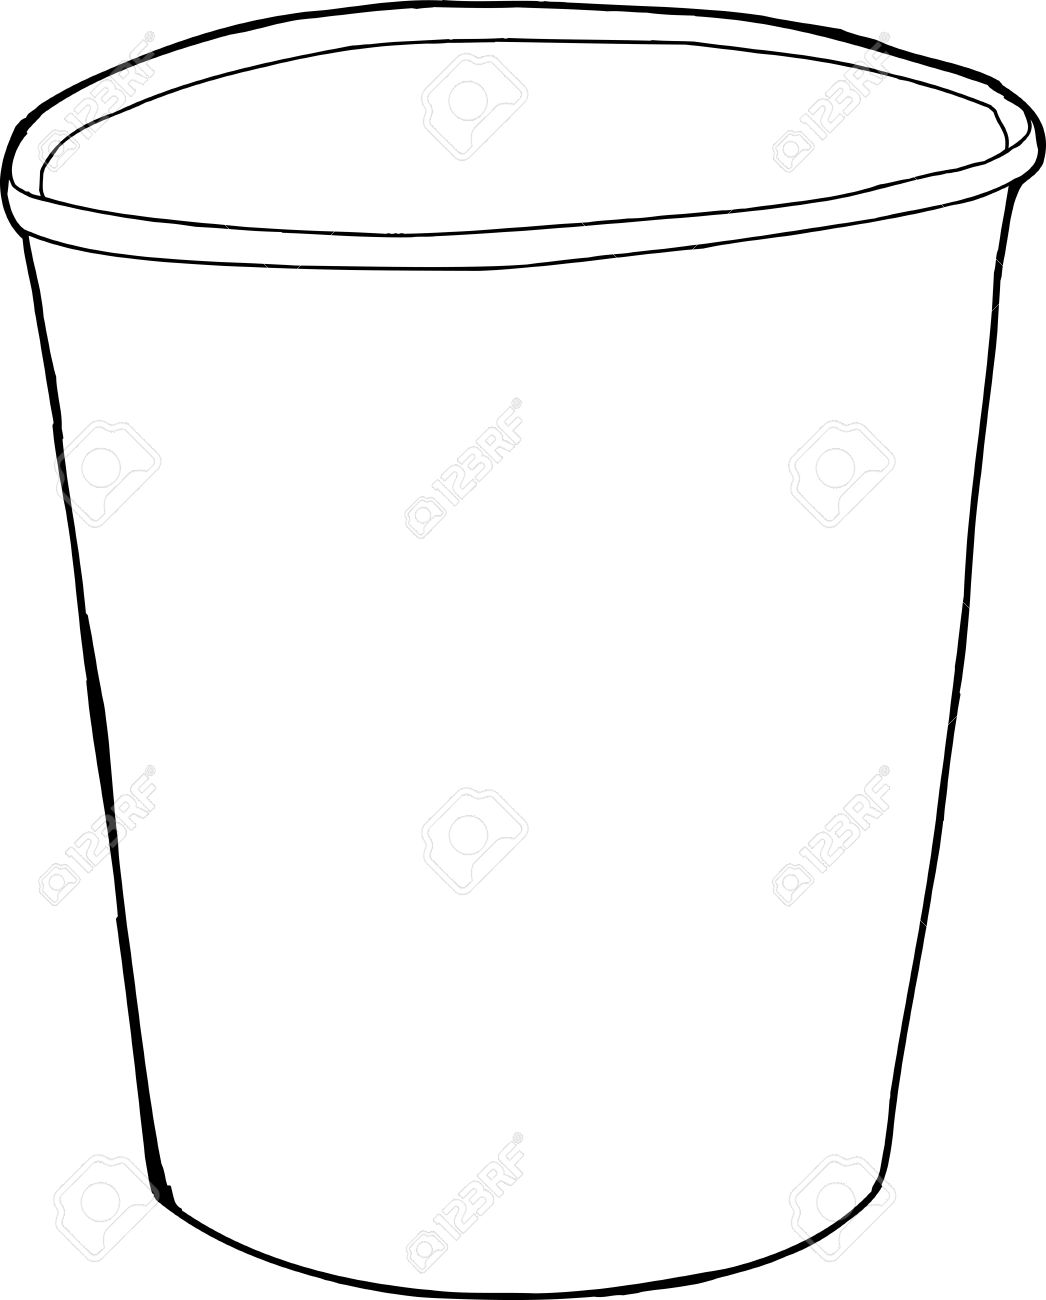 outline picture of cup cup clipart outline cup outline transparent free for of outline cup picture